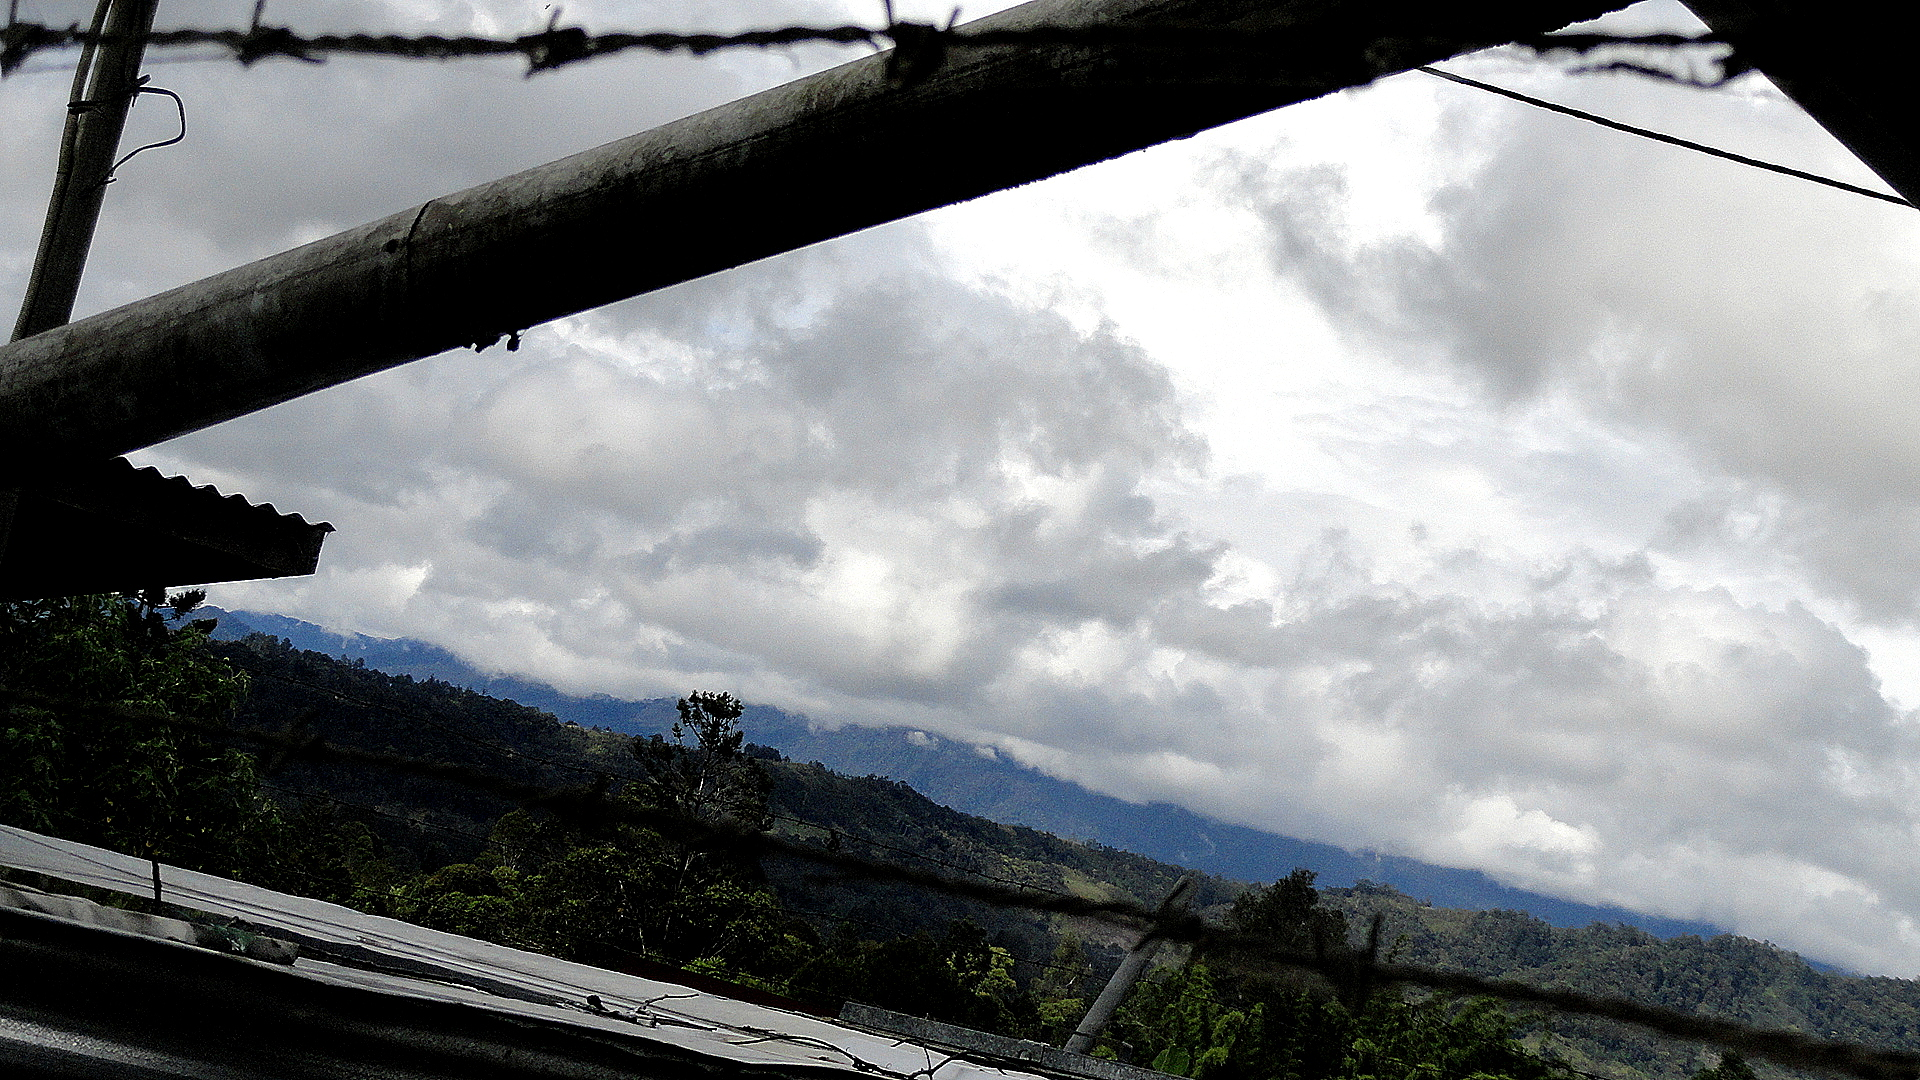 Water Tanks - Barbed Wire - Mountains